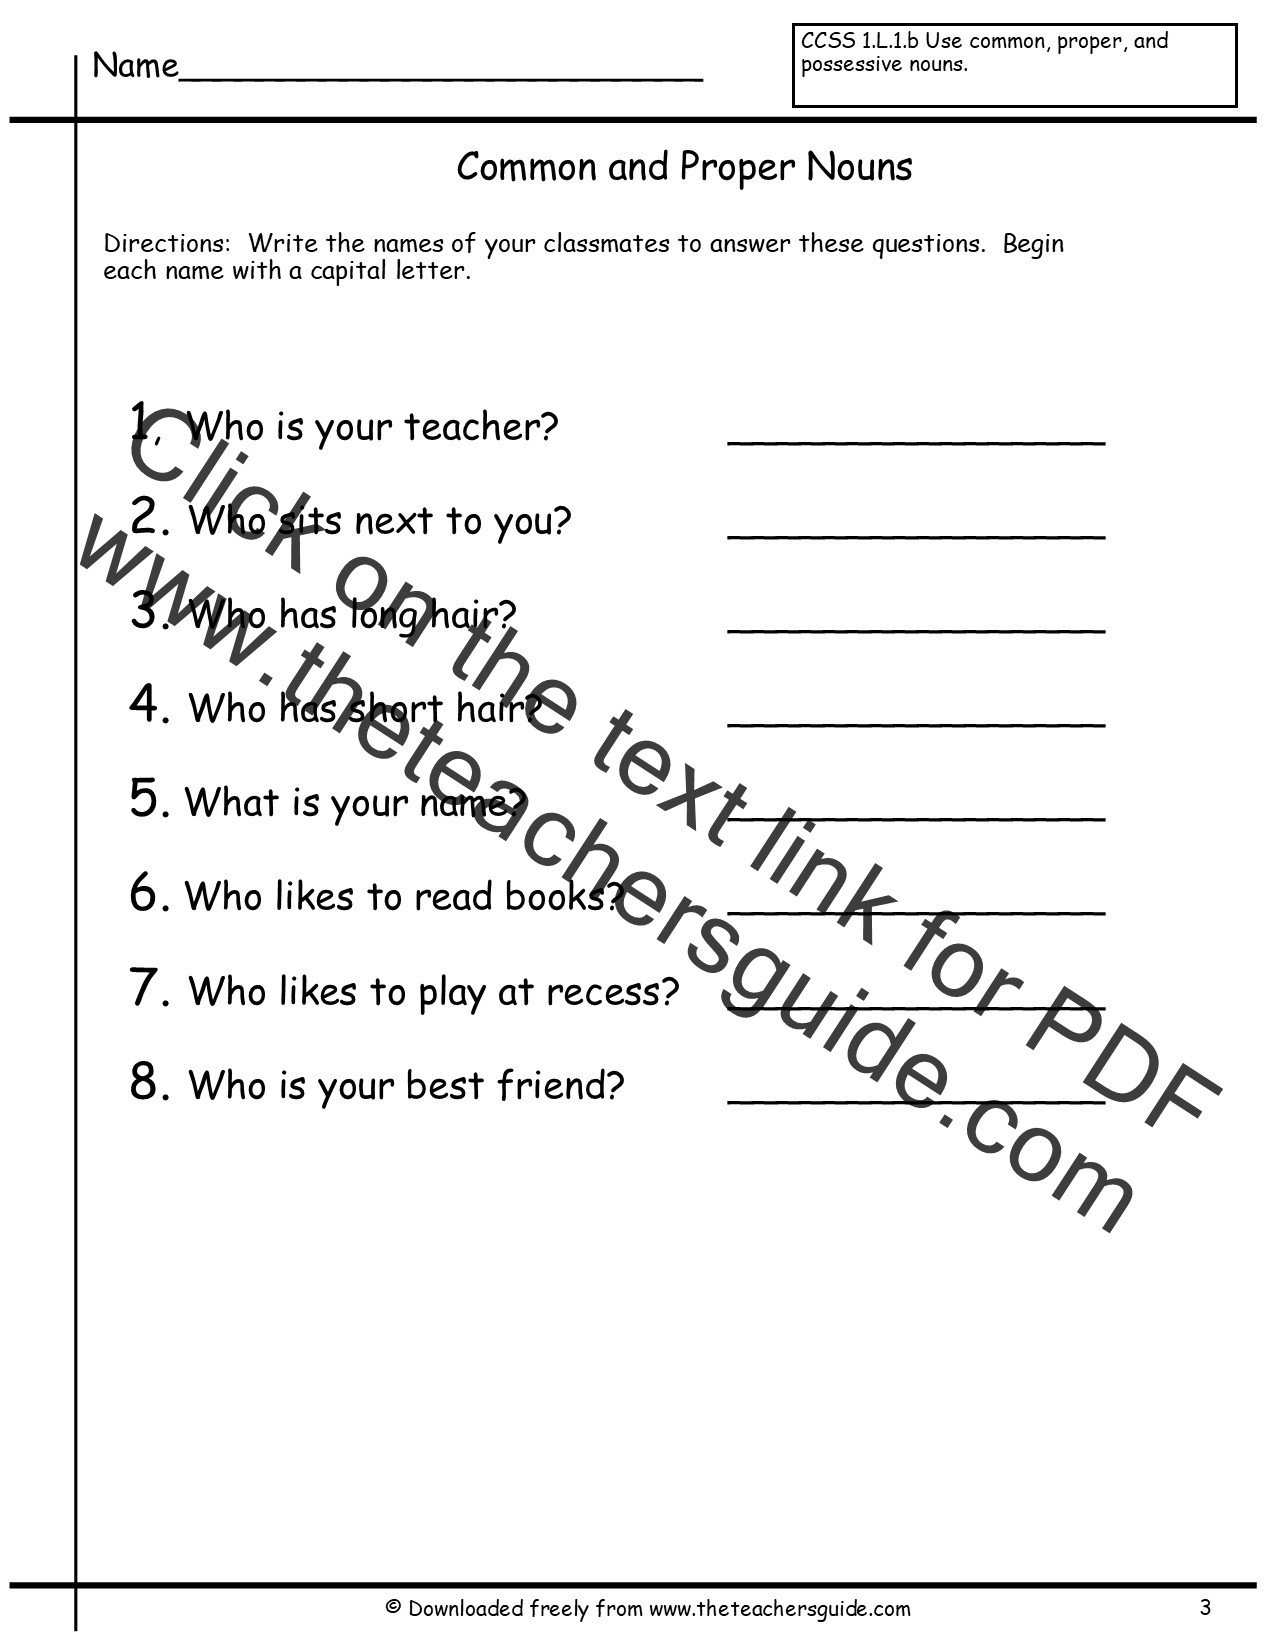 Free Proper Noun Worksheets Proper Noun and Mon Noun Worksheet Promotiontablecovers